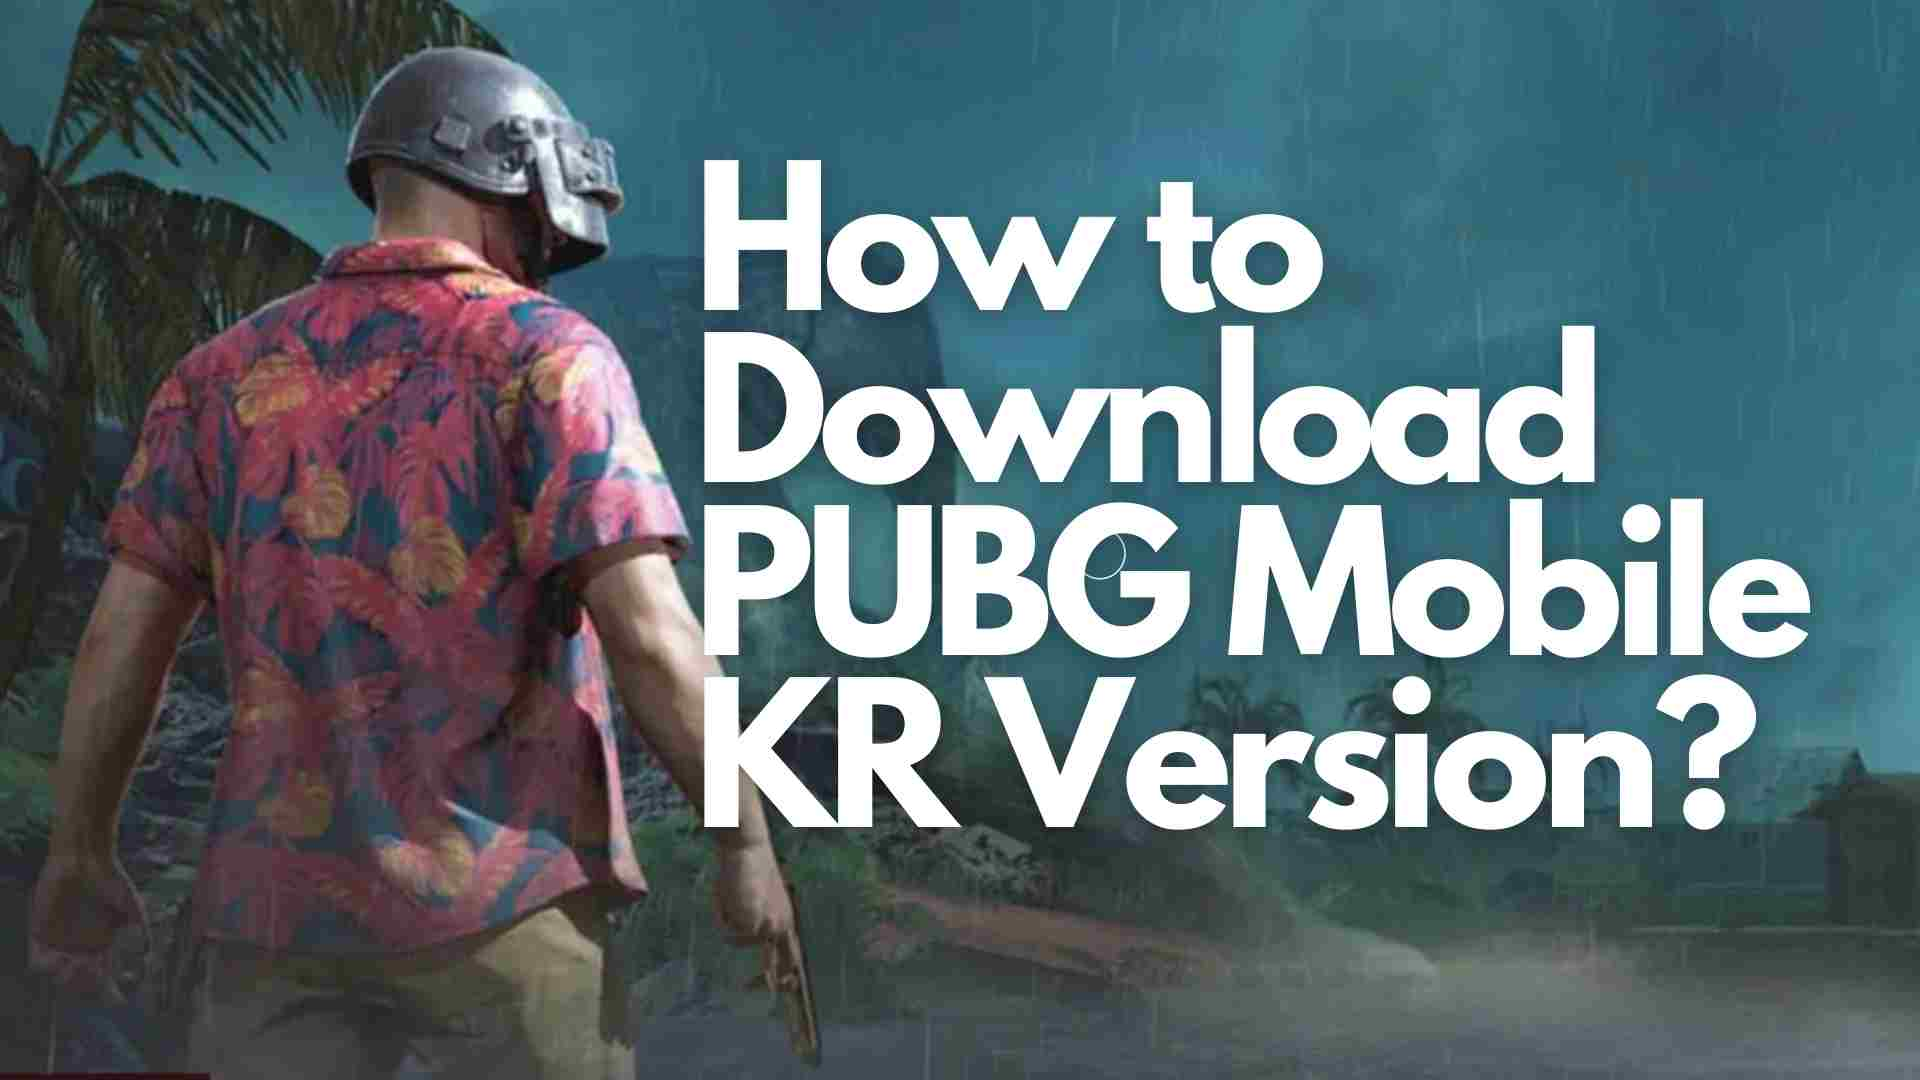 How to Download PUBG Mobile KR Version